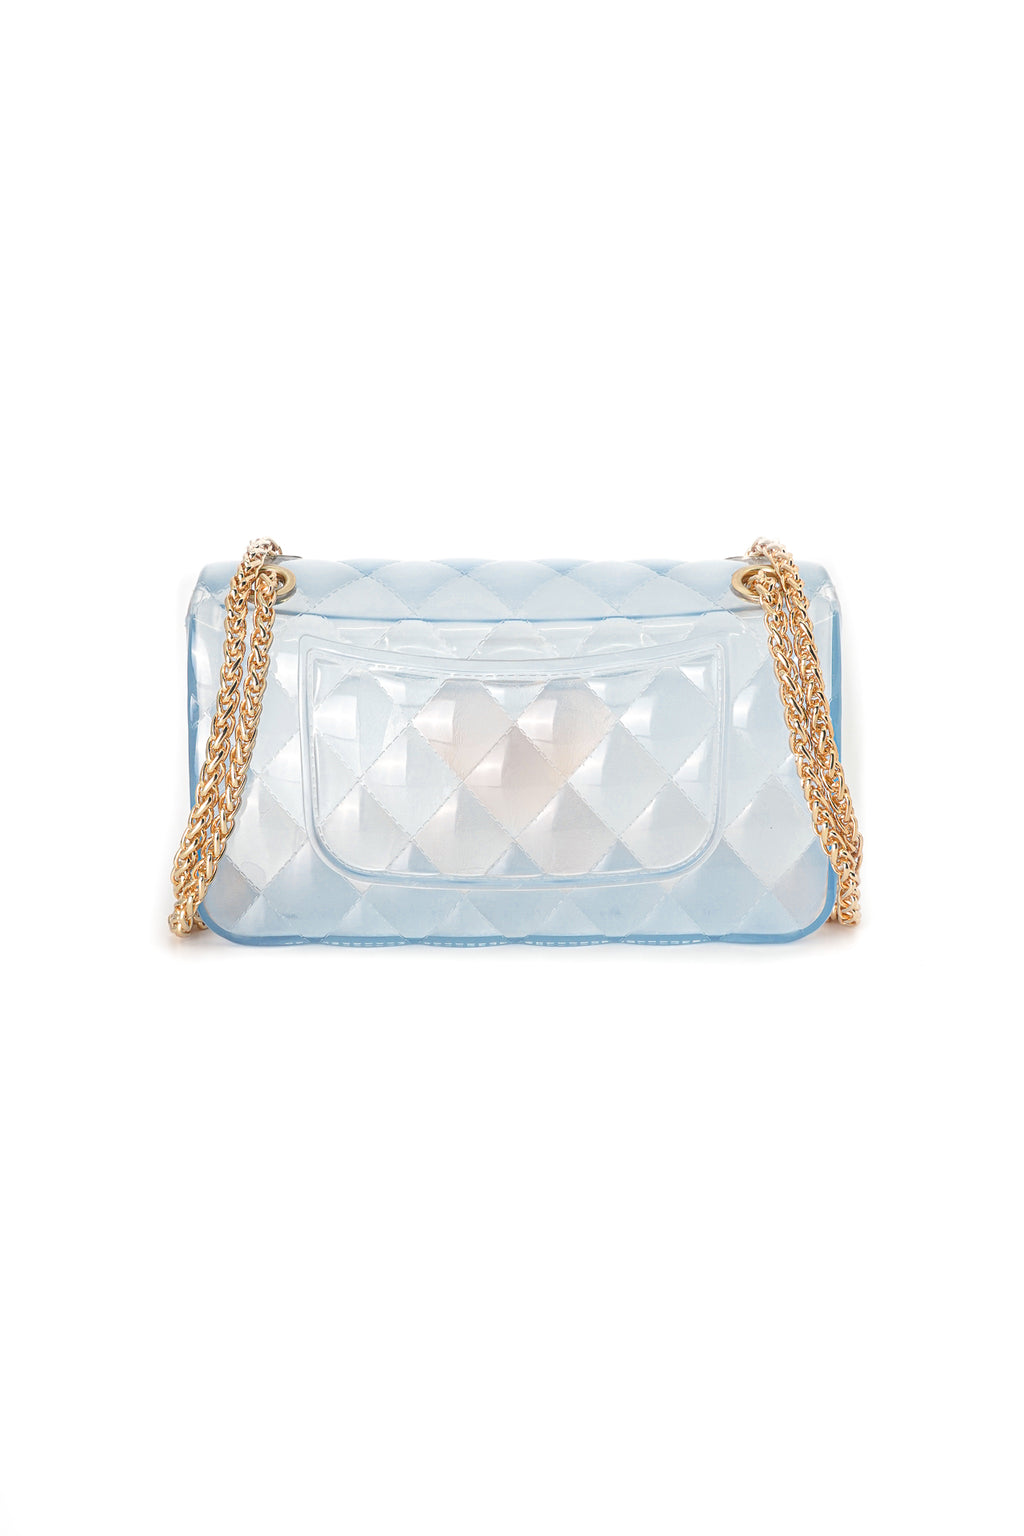 Medium Rectangle Quilted Jelly Crossbody Bag with Gold Chain Strap